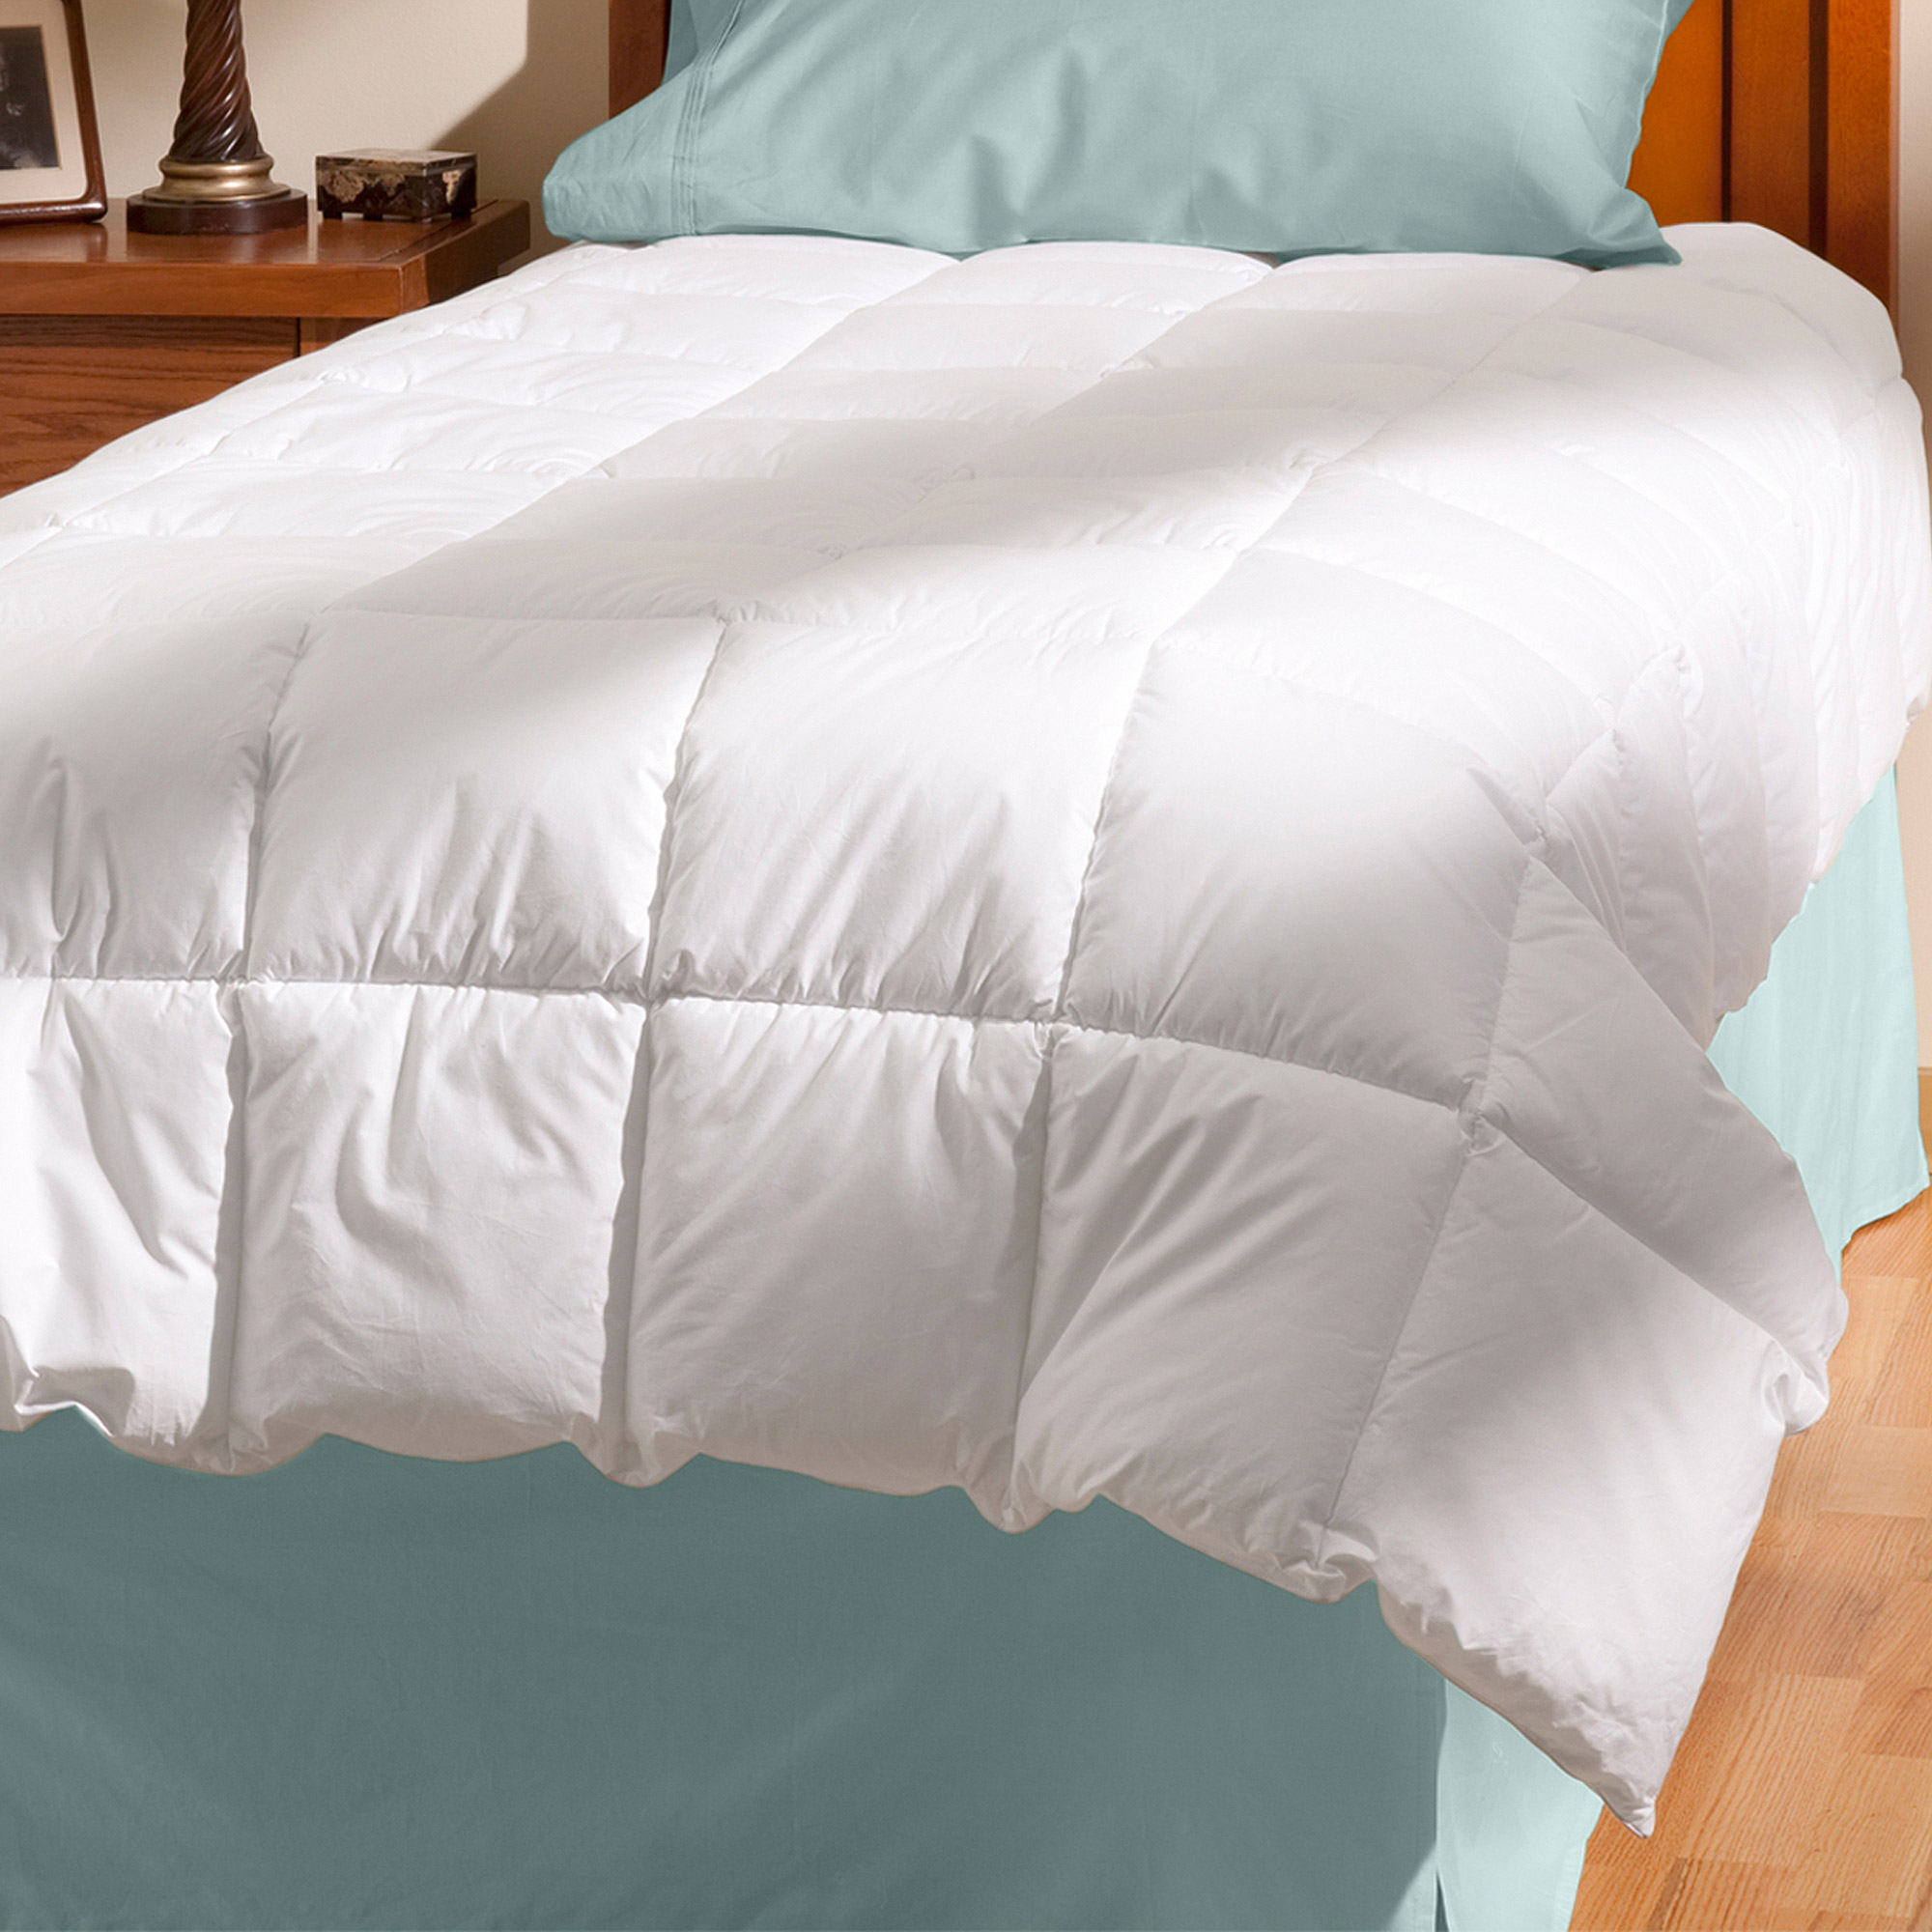 AllerEase Down Alternative Cotton Allergy Protection Comforter